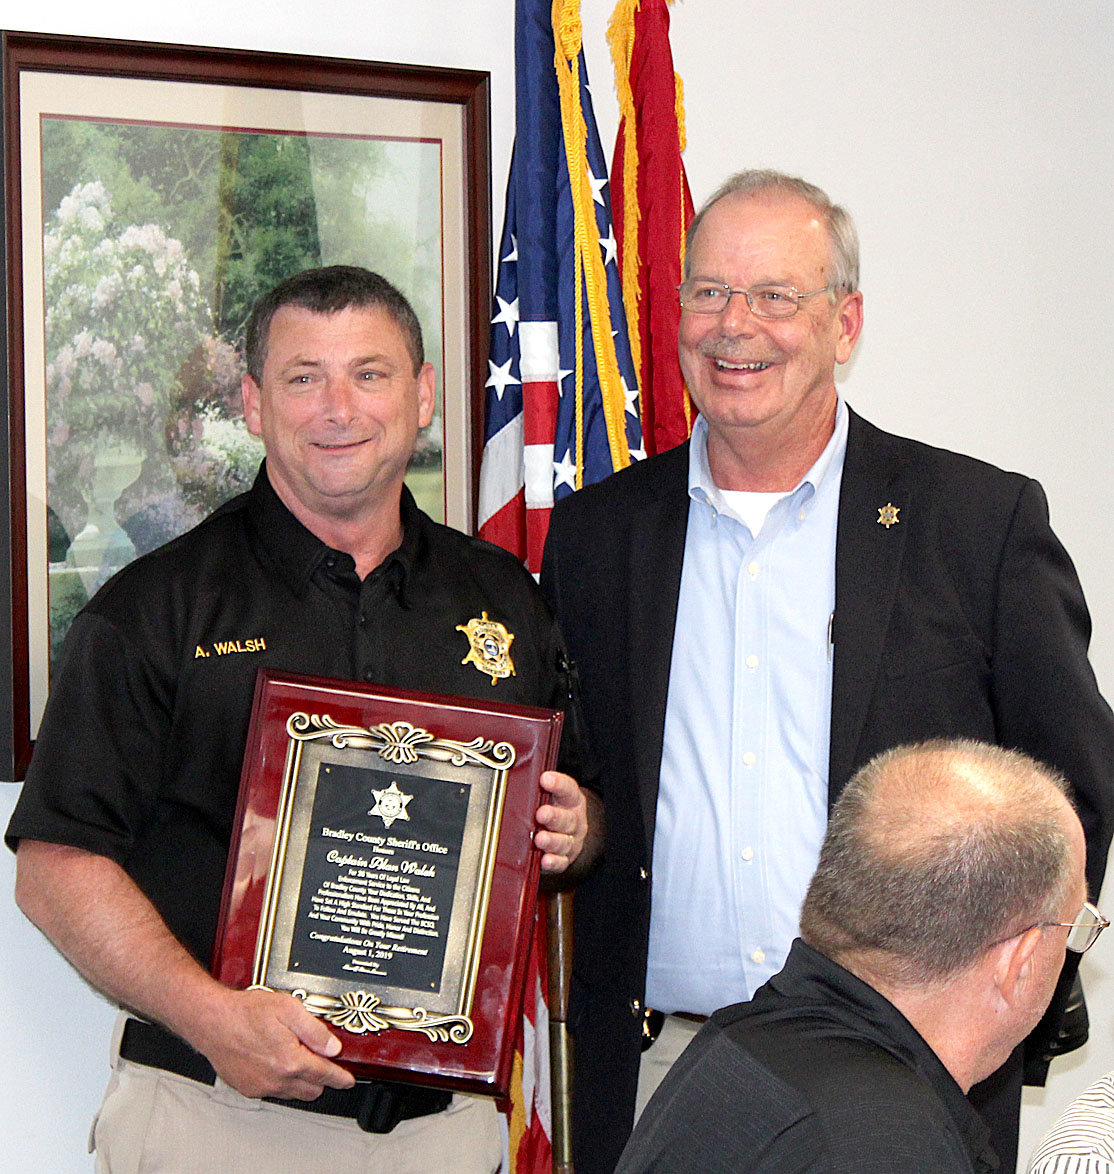 Alan Walsh retires from BCSO after 36 years service | The